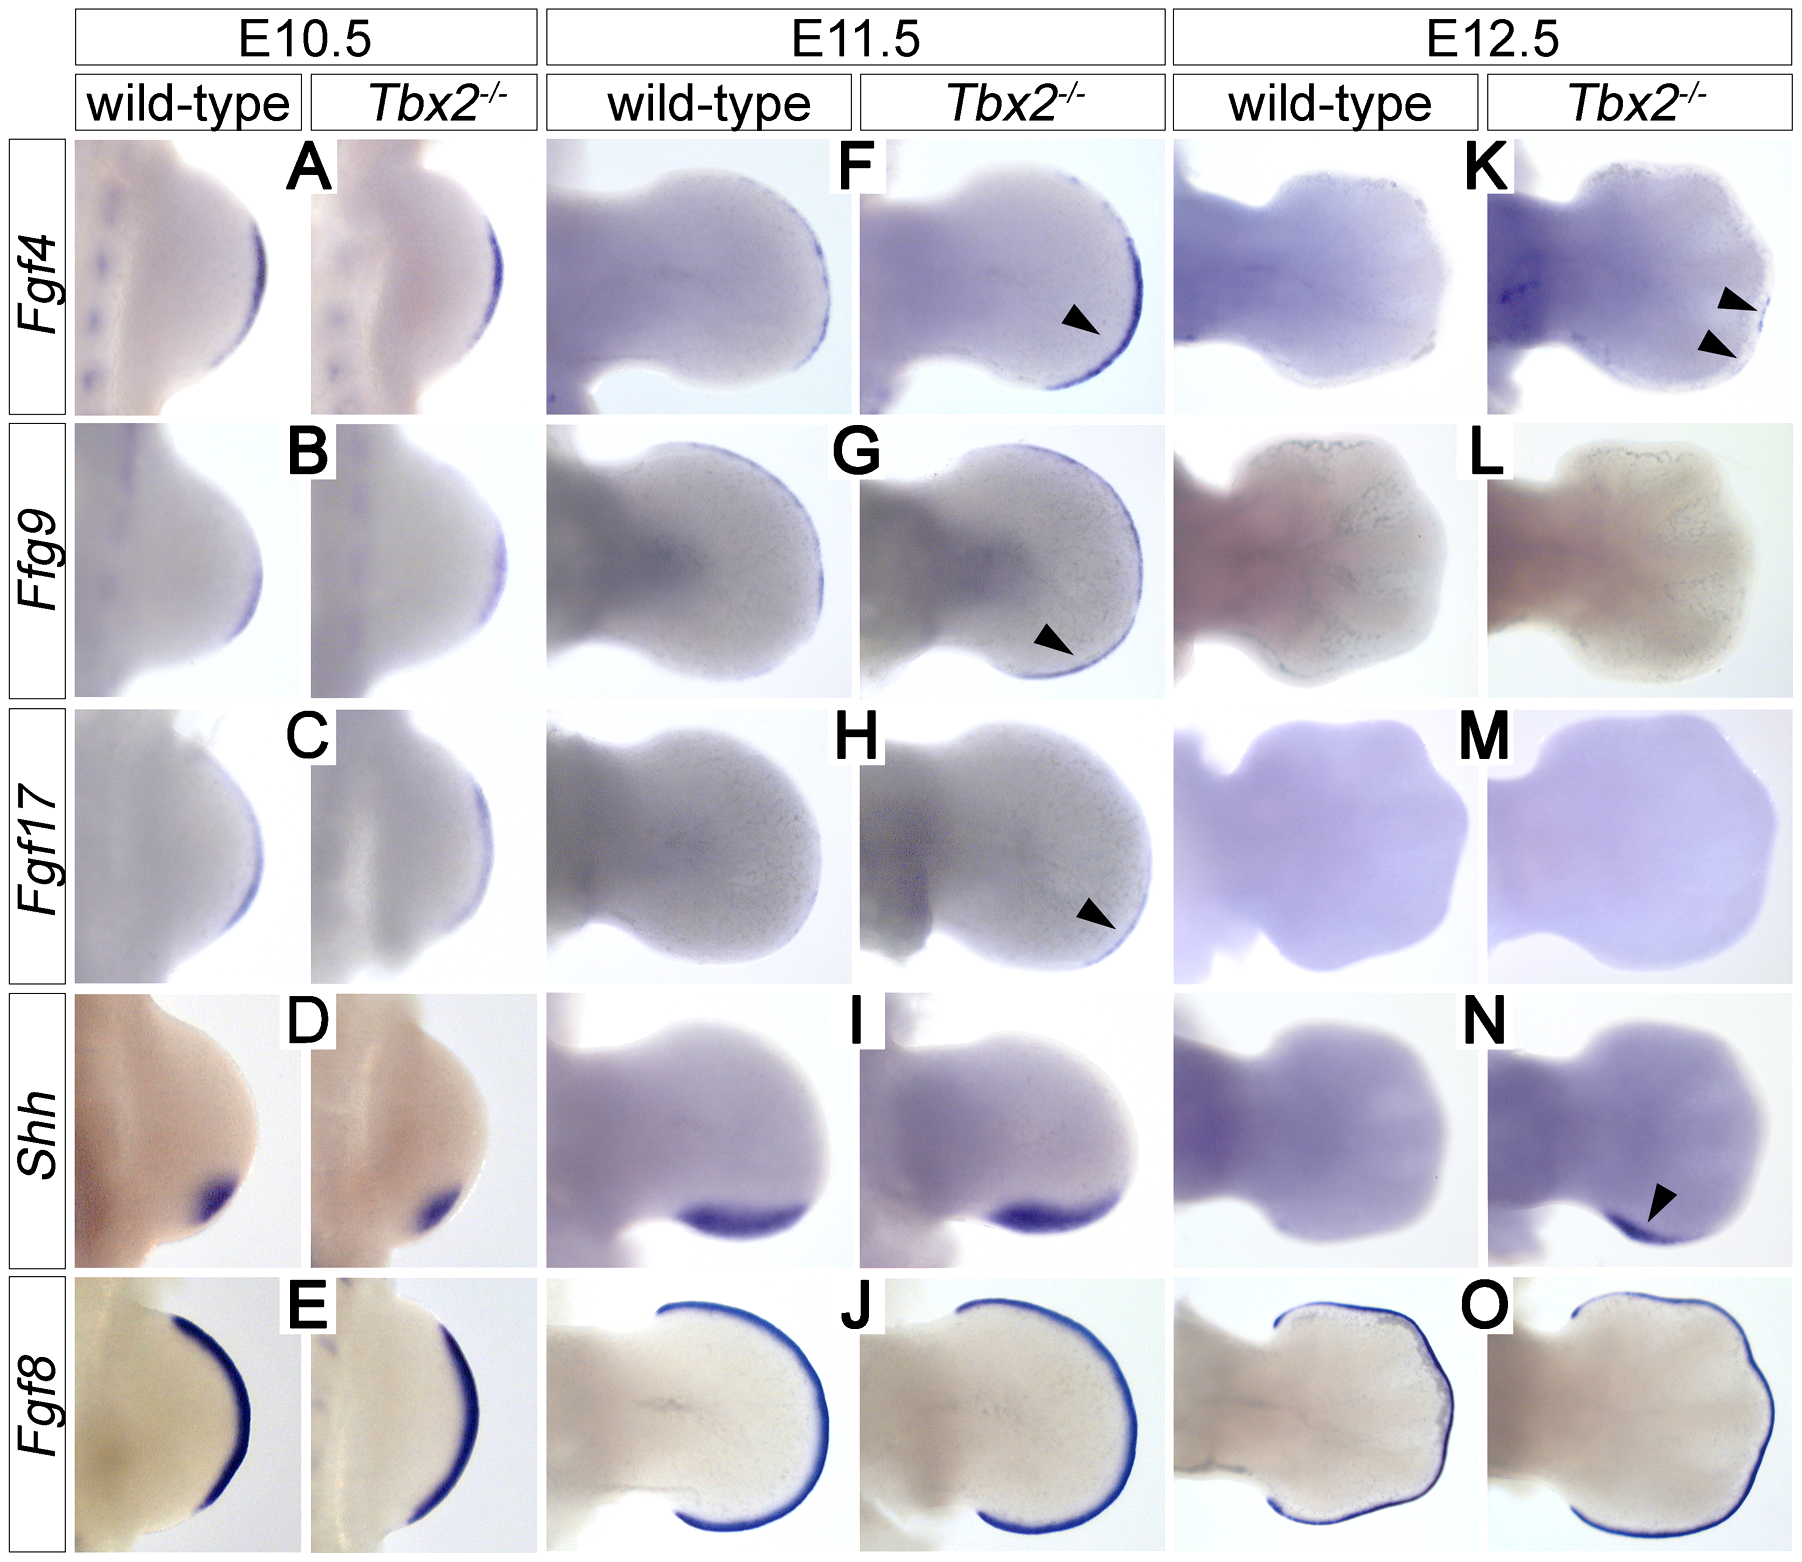 Prolonged posterior e-m signaling in <i>Tbx2</i>-deficient hindlimbs.